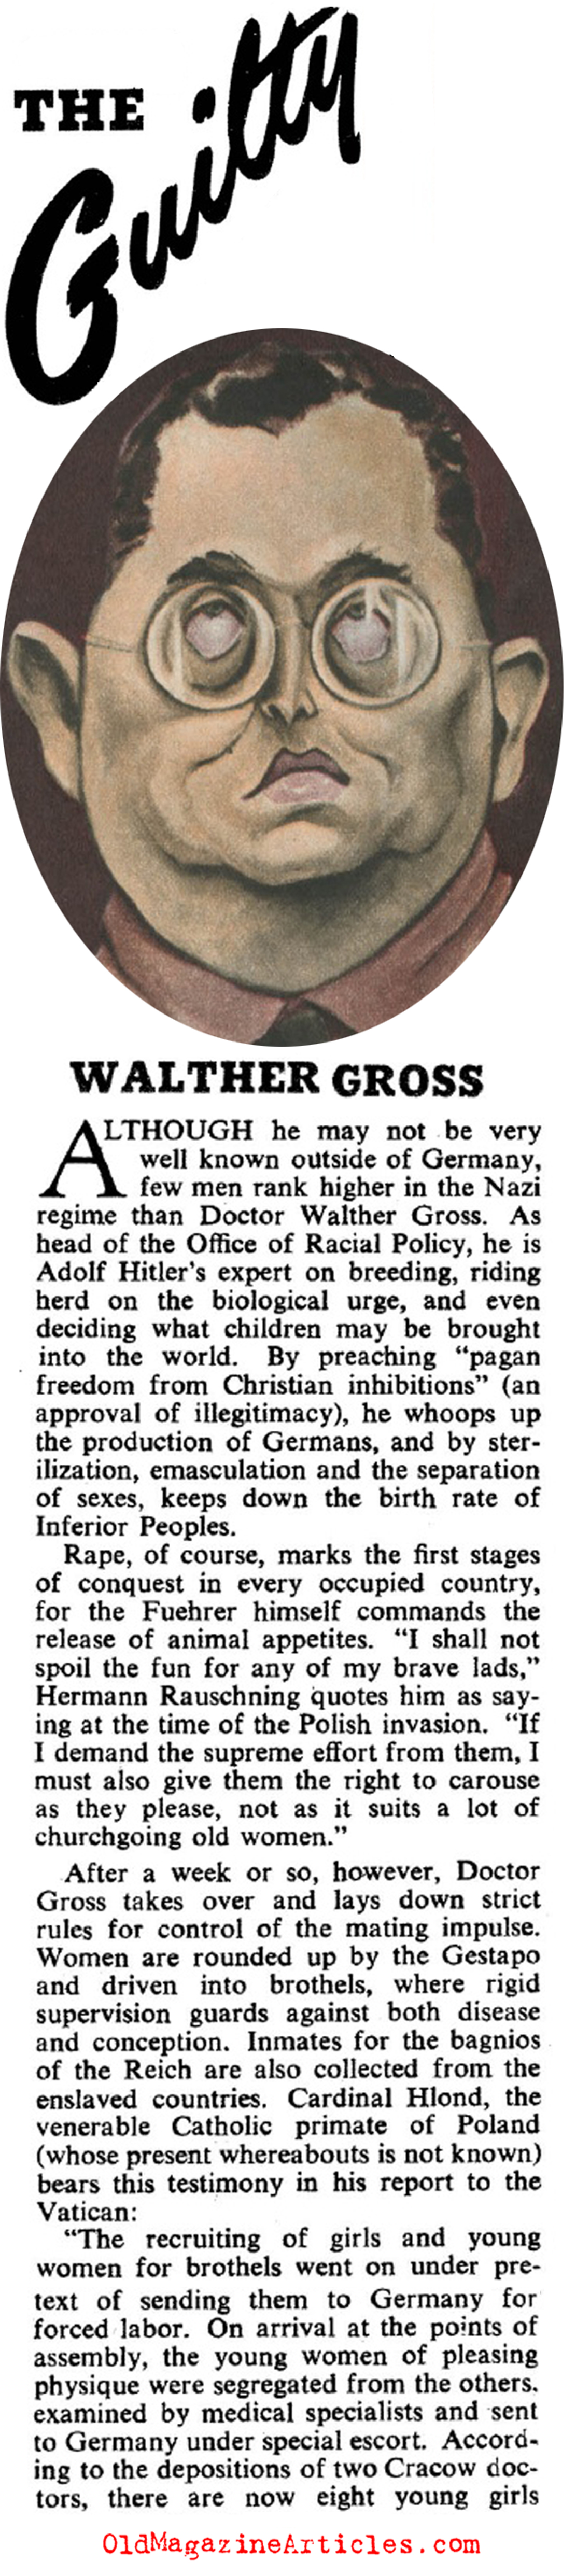 Dr. Walter Gross and the Office of Racial Policy (Collier's Magazine, 1944)